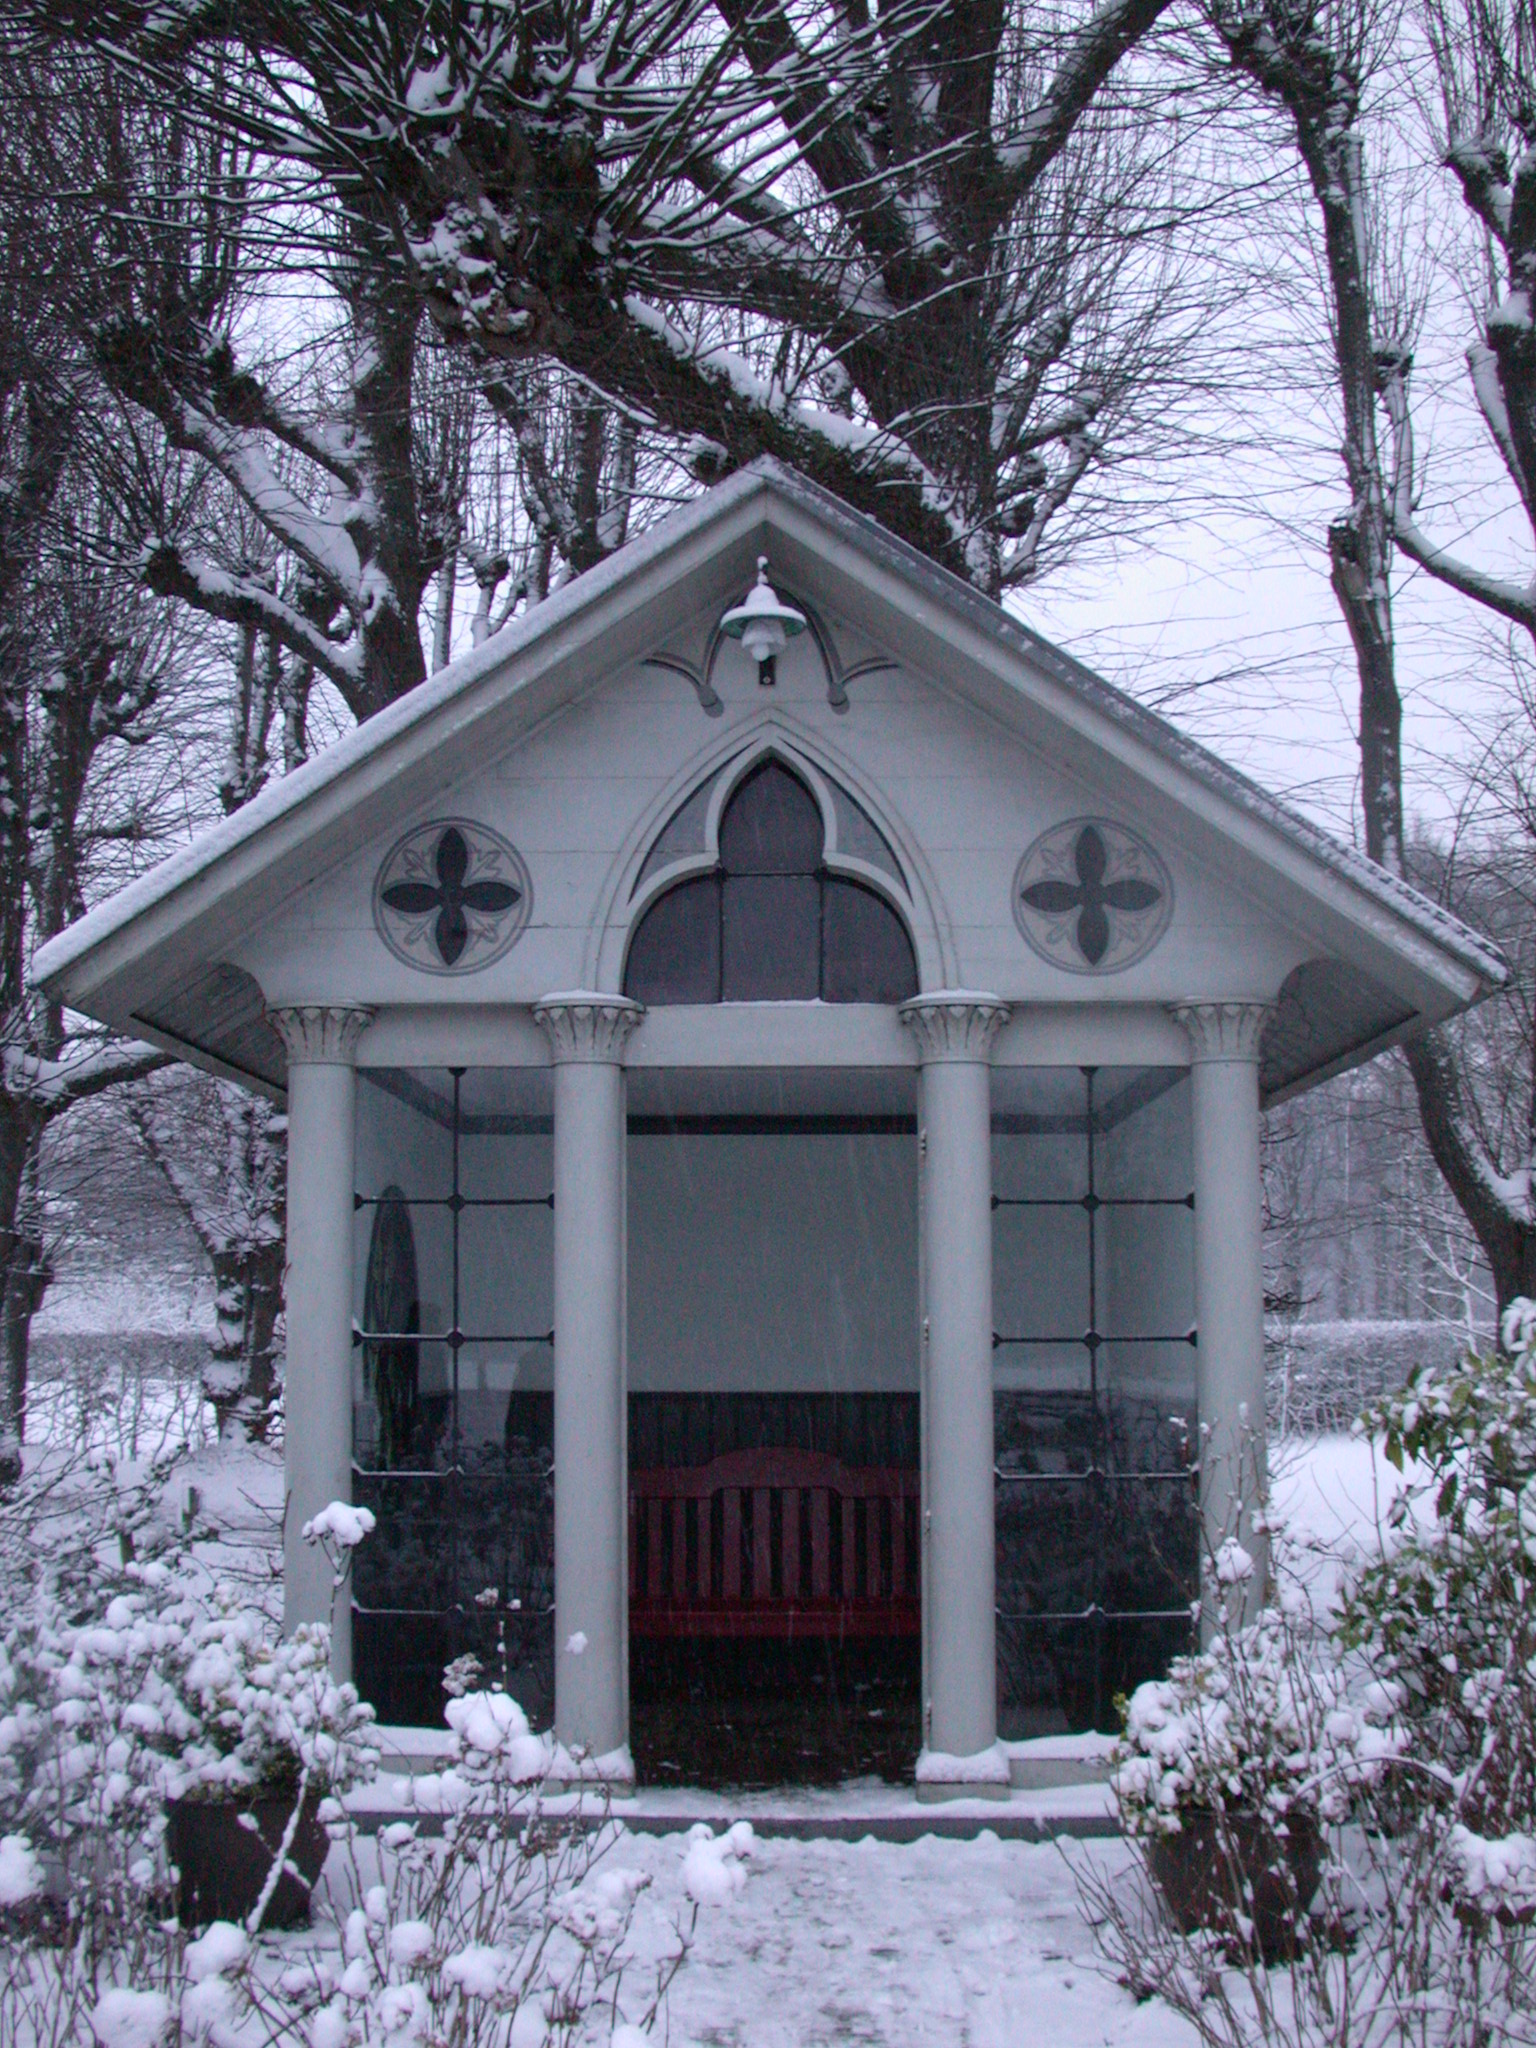 winter winter snow cold trees glass panes reflection the perfect little house